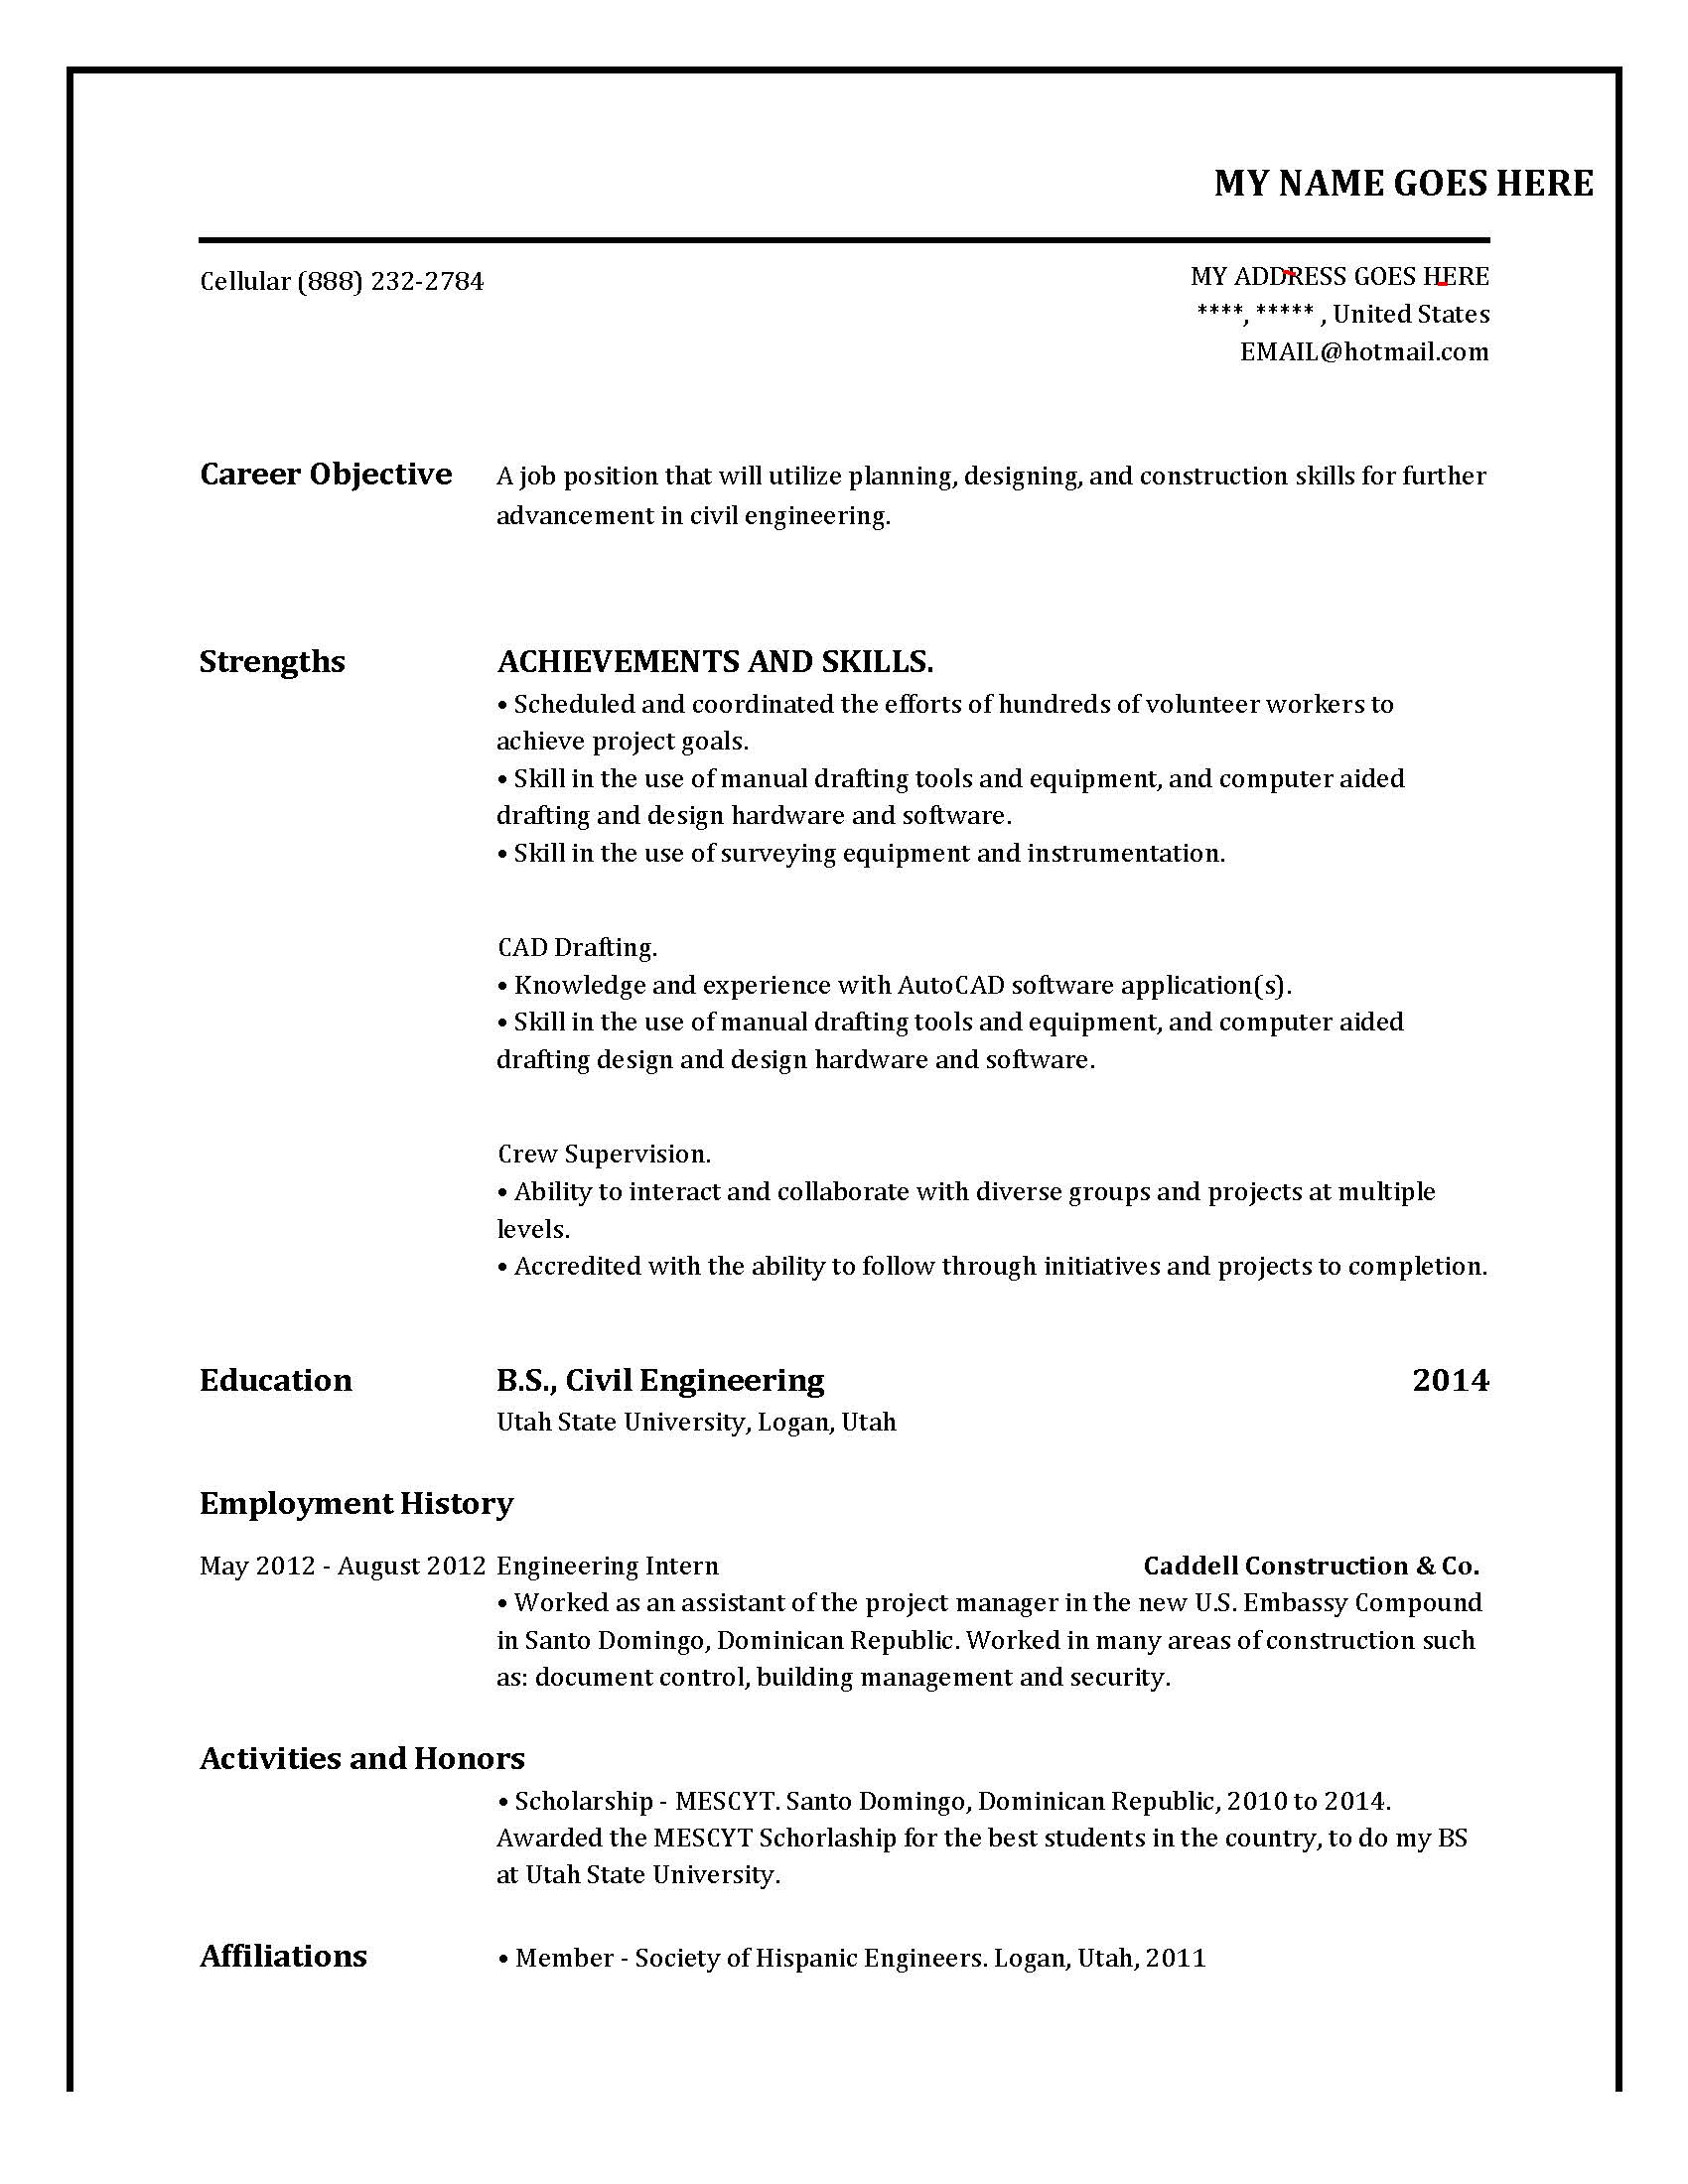 cover letter does my resume best - Free Help With Resumes And Cover Letters